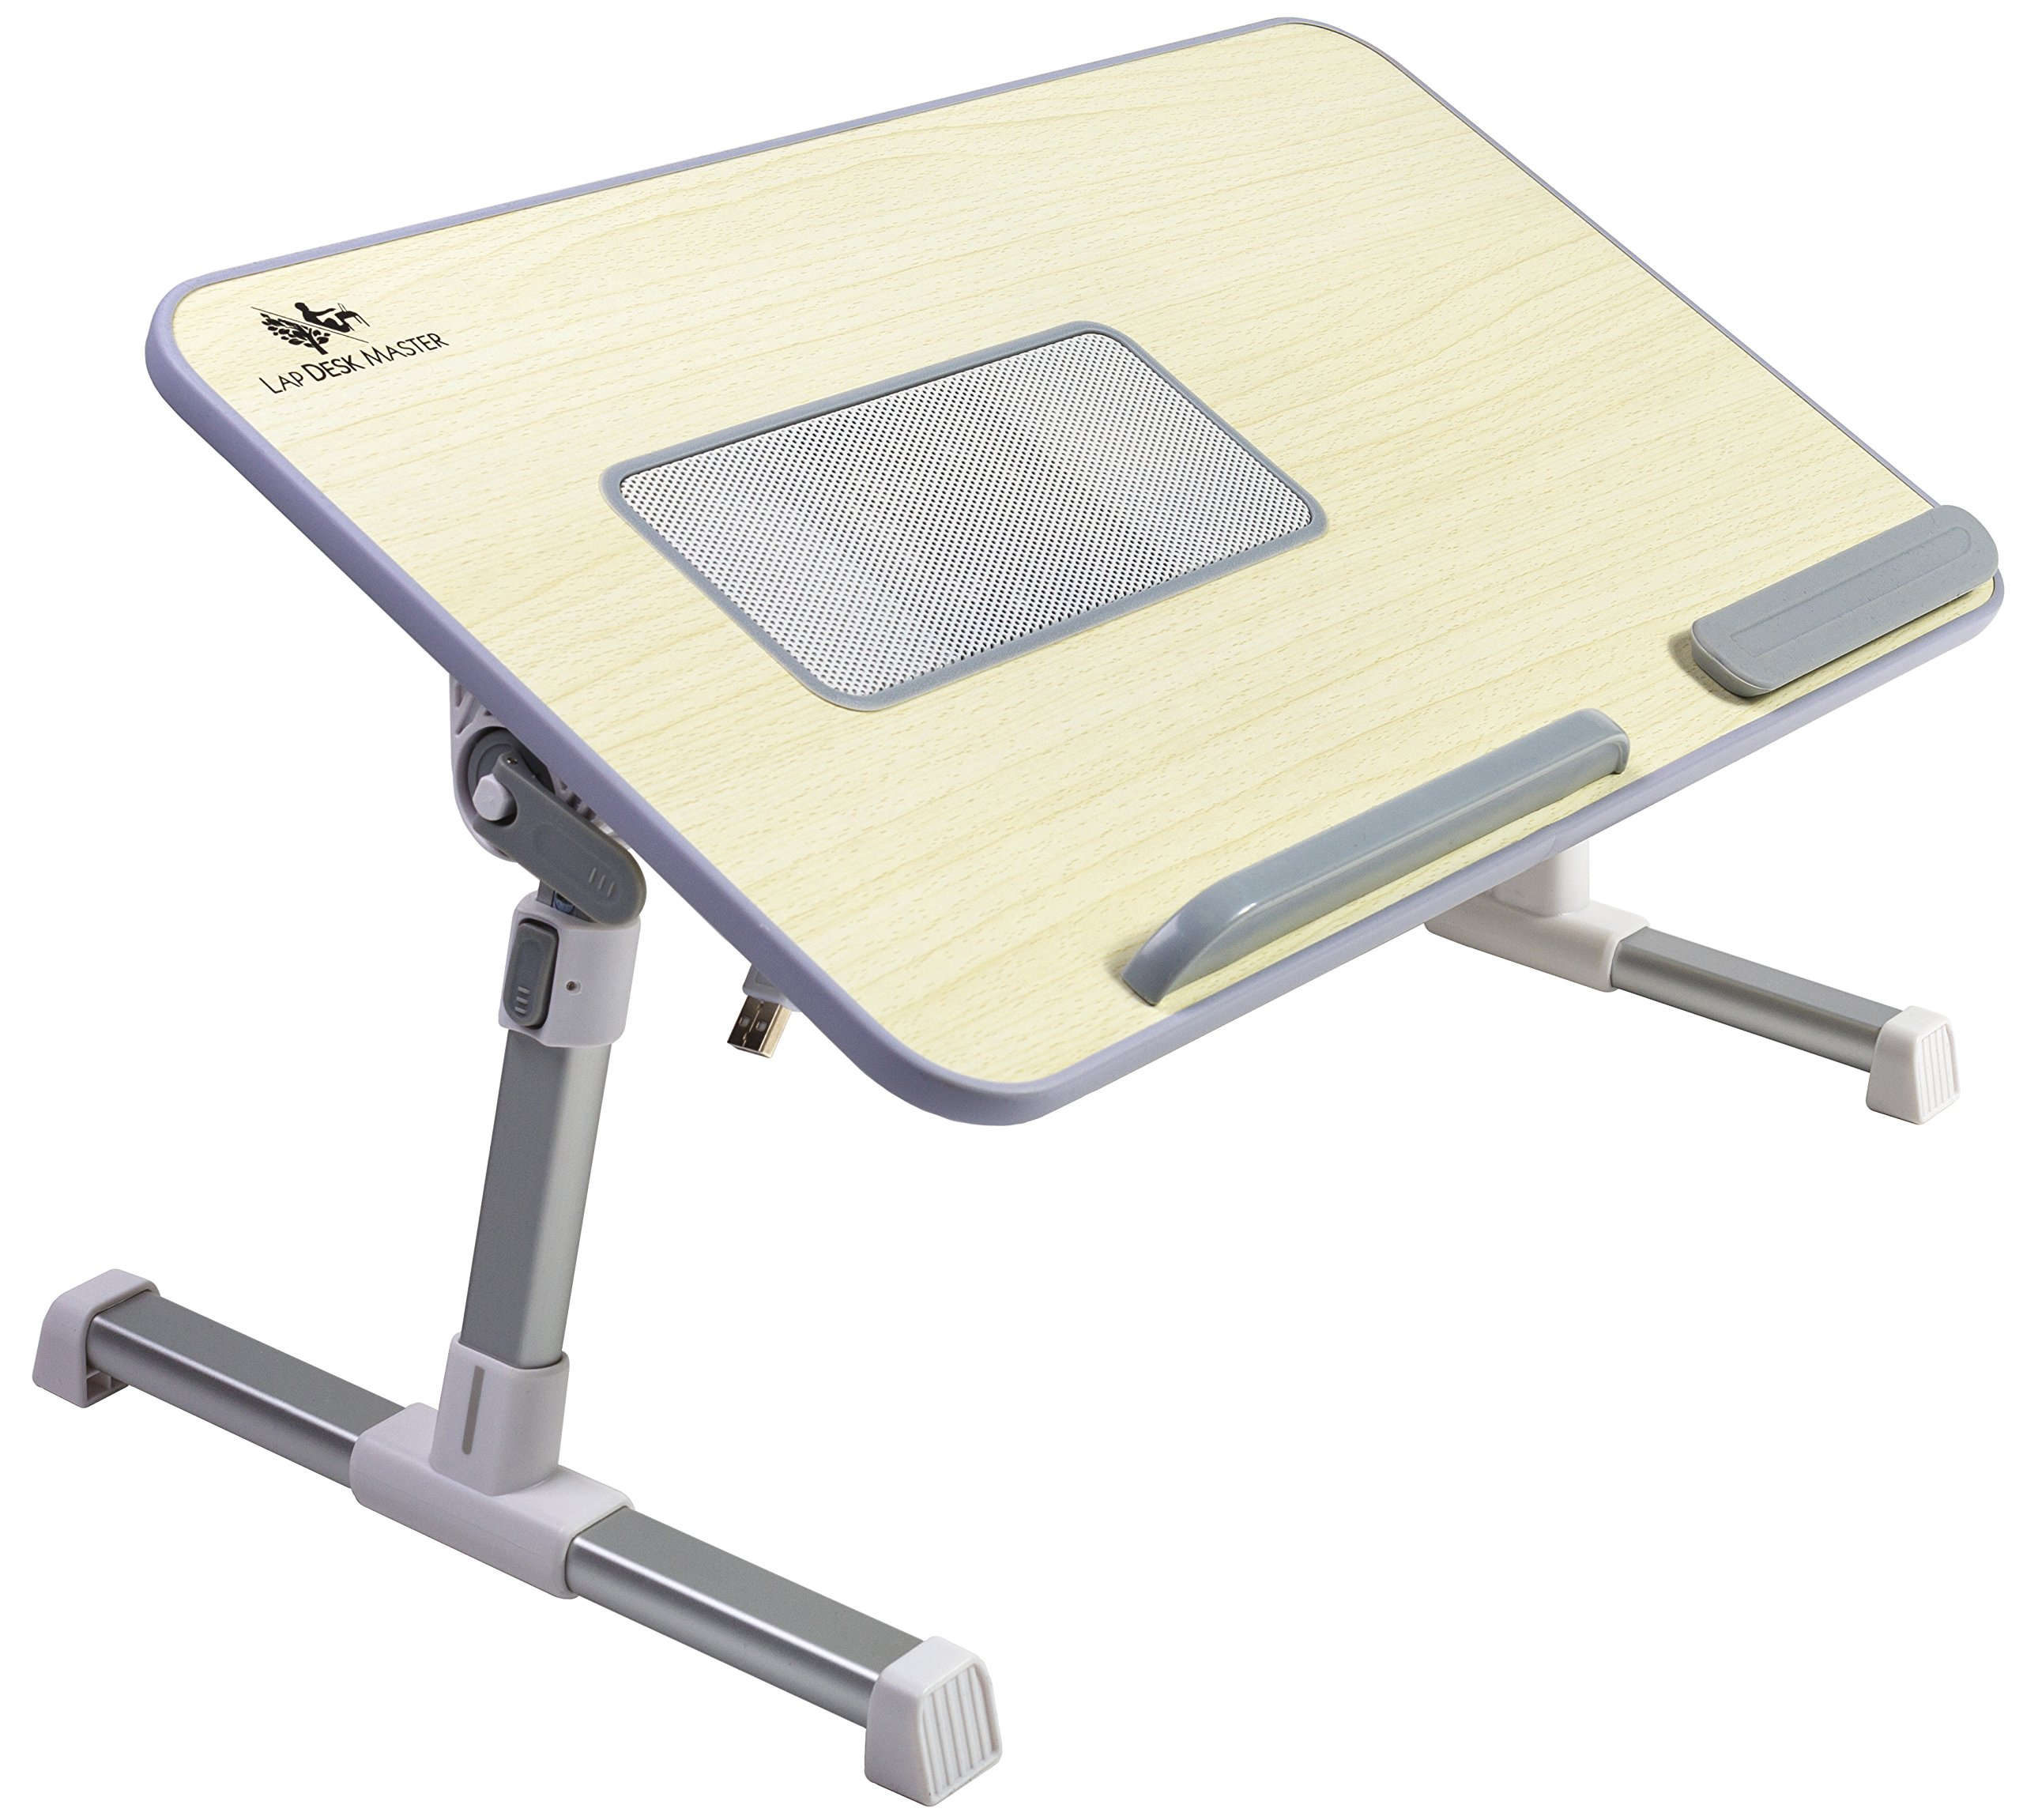 Adjustable Laptop Bed Tray Table with Cooling Fan by Lap Desk Master, Portable Laptop Couch Desk with Foldable Legs